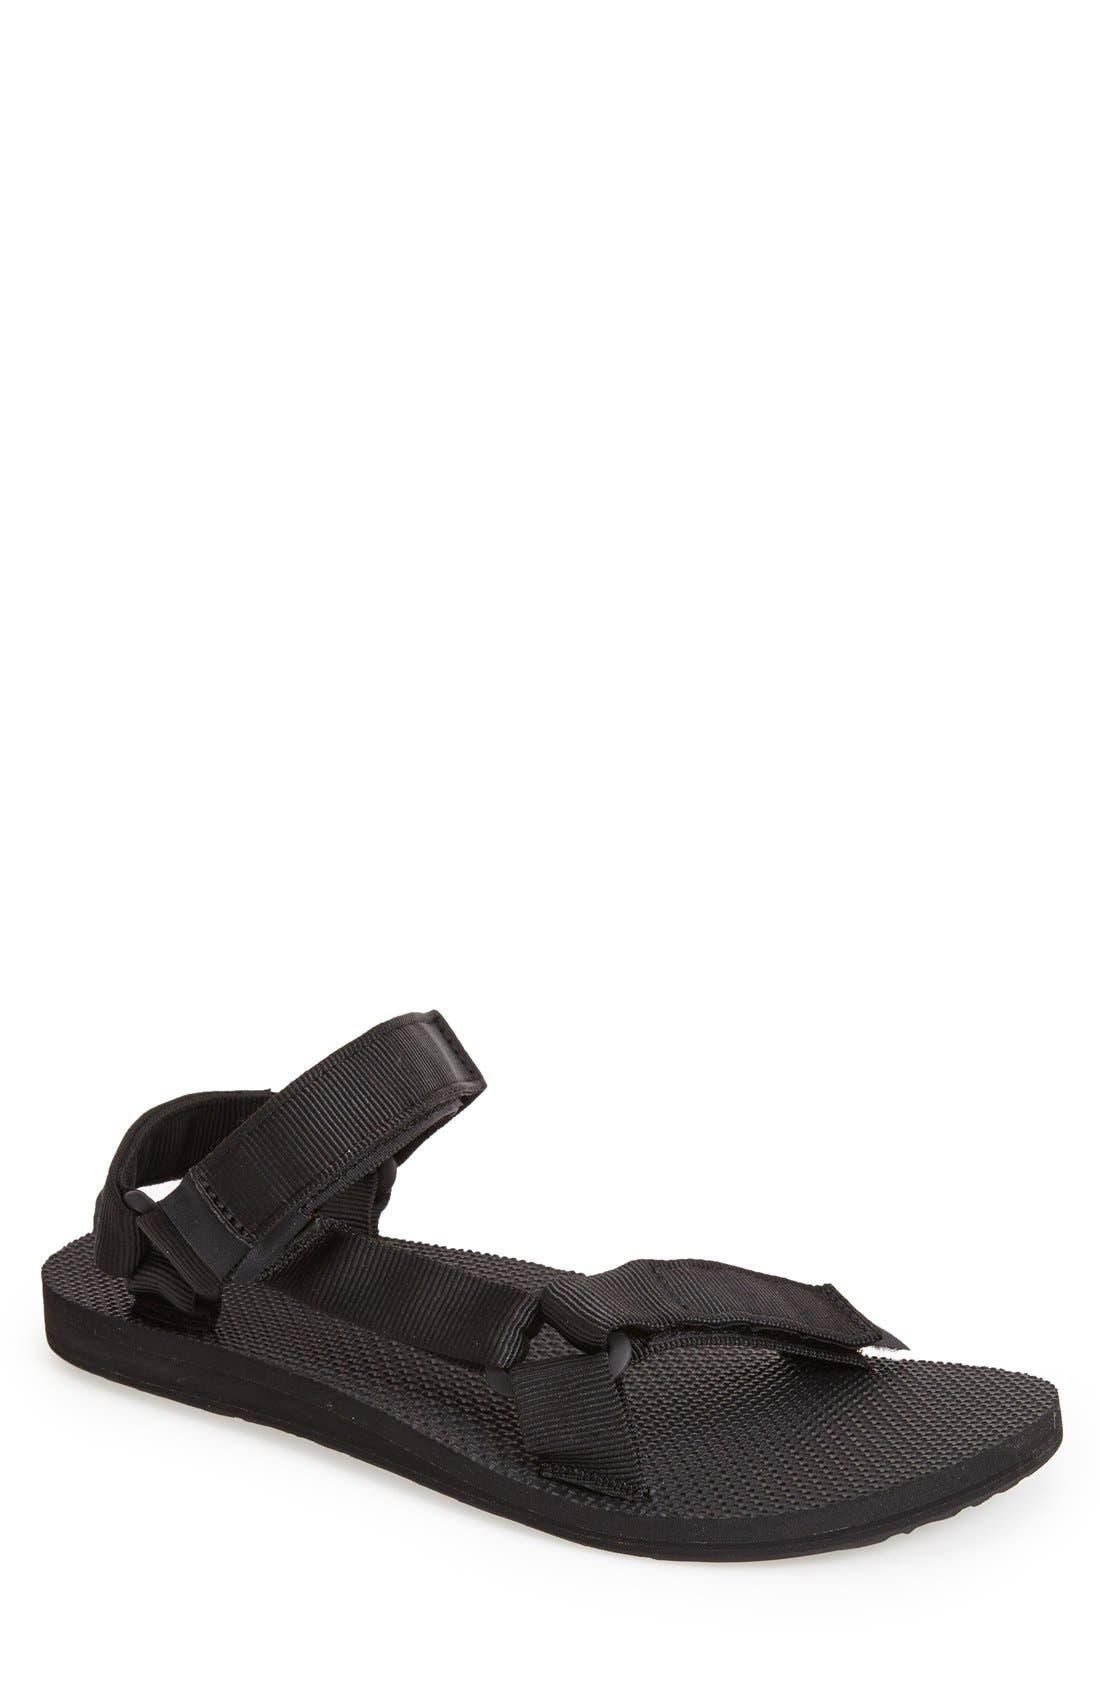 Alternate Image 1 Selected - Teva 'Original Universal Urban' Sandal (Men)